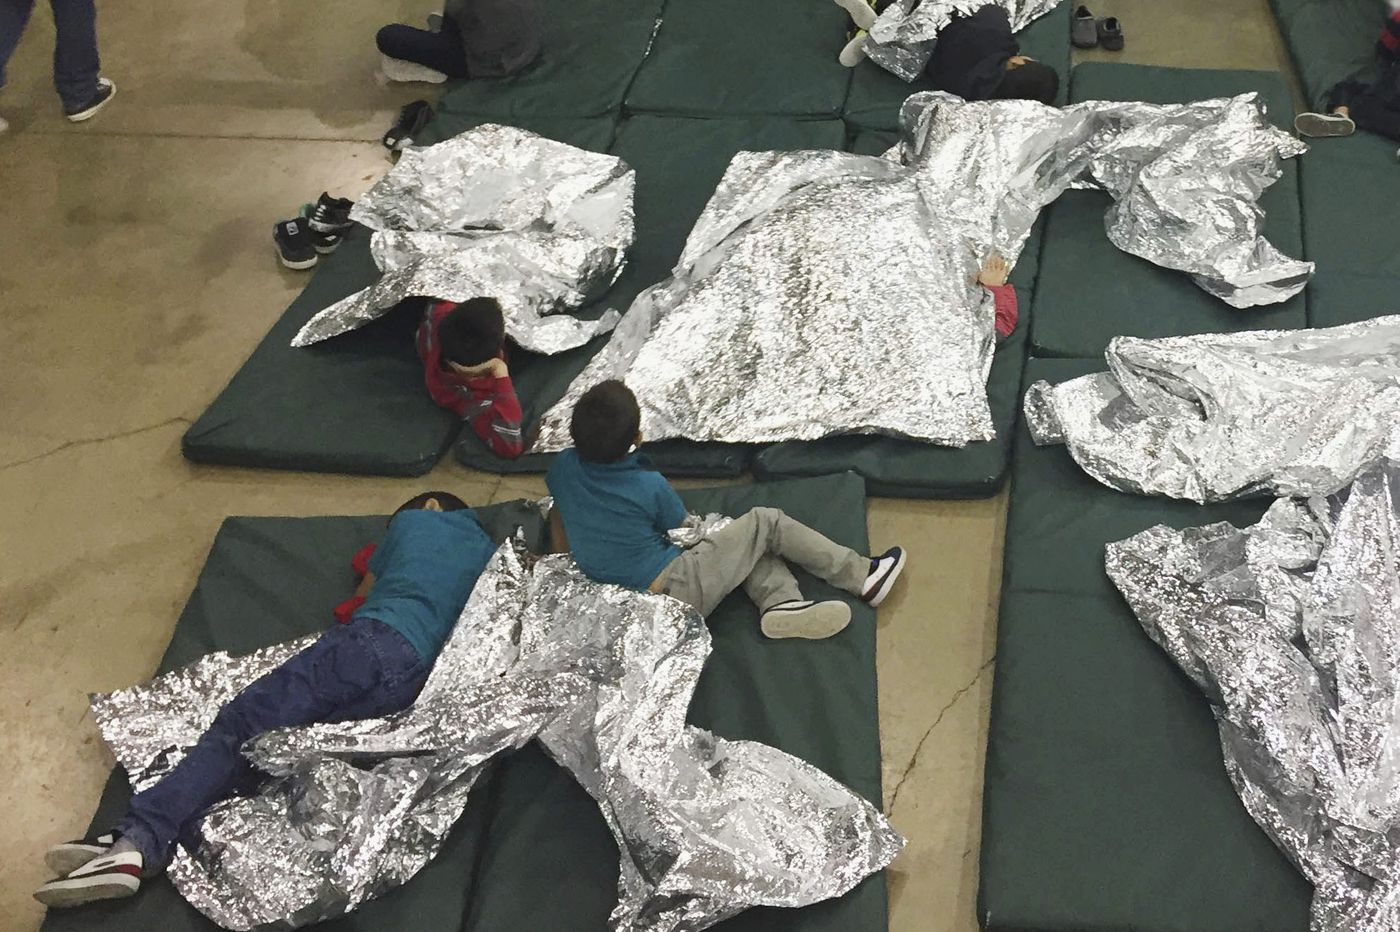 Two-thirds of Americans oppose Trump's family-separation policy   Poll